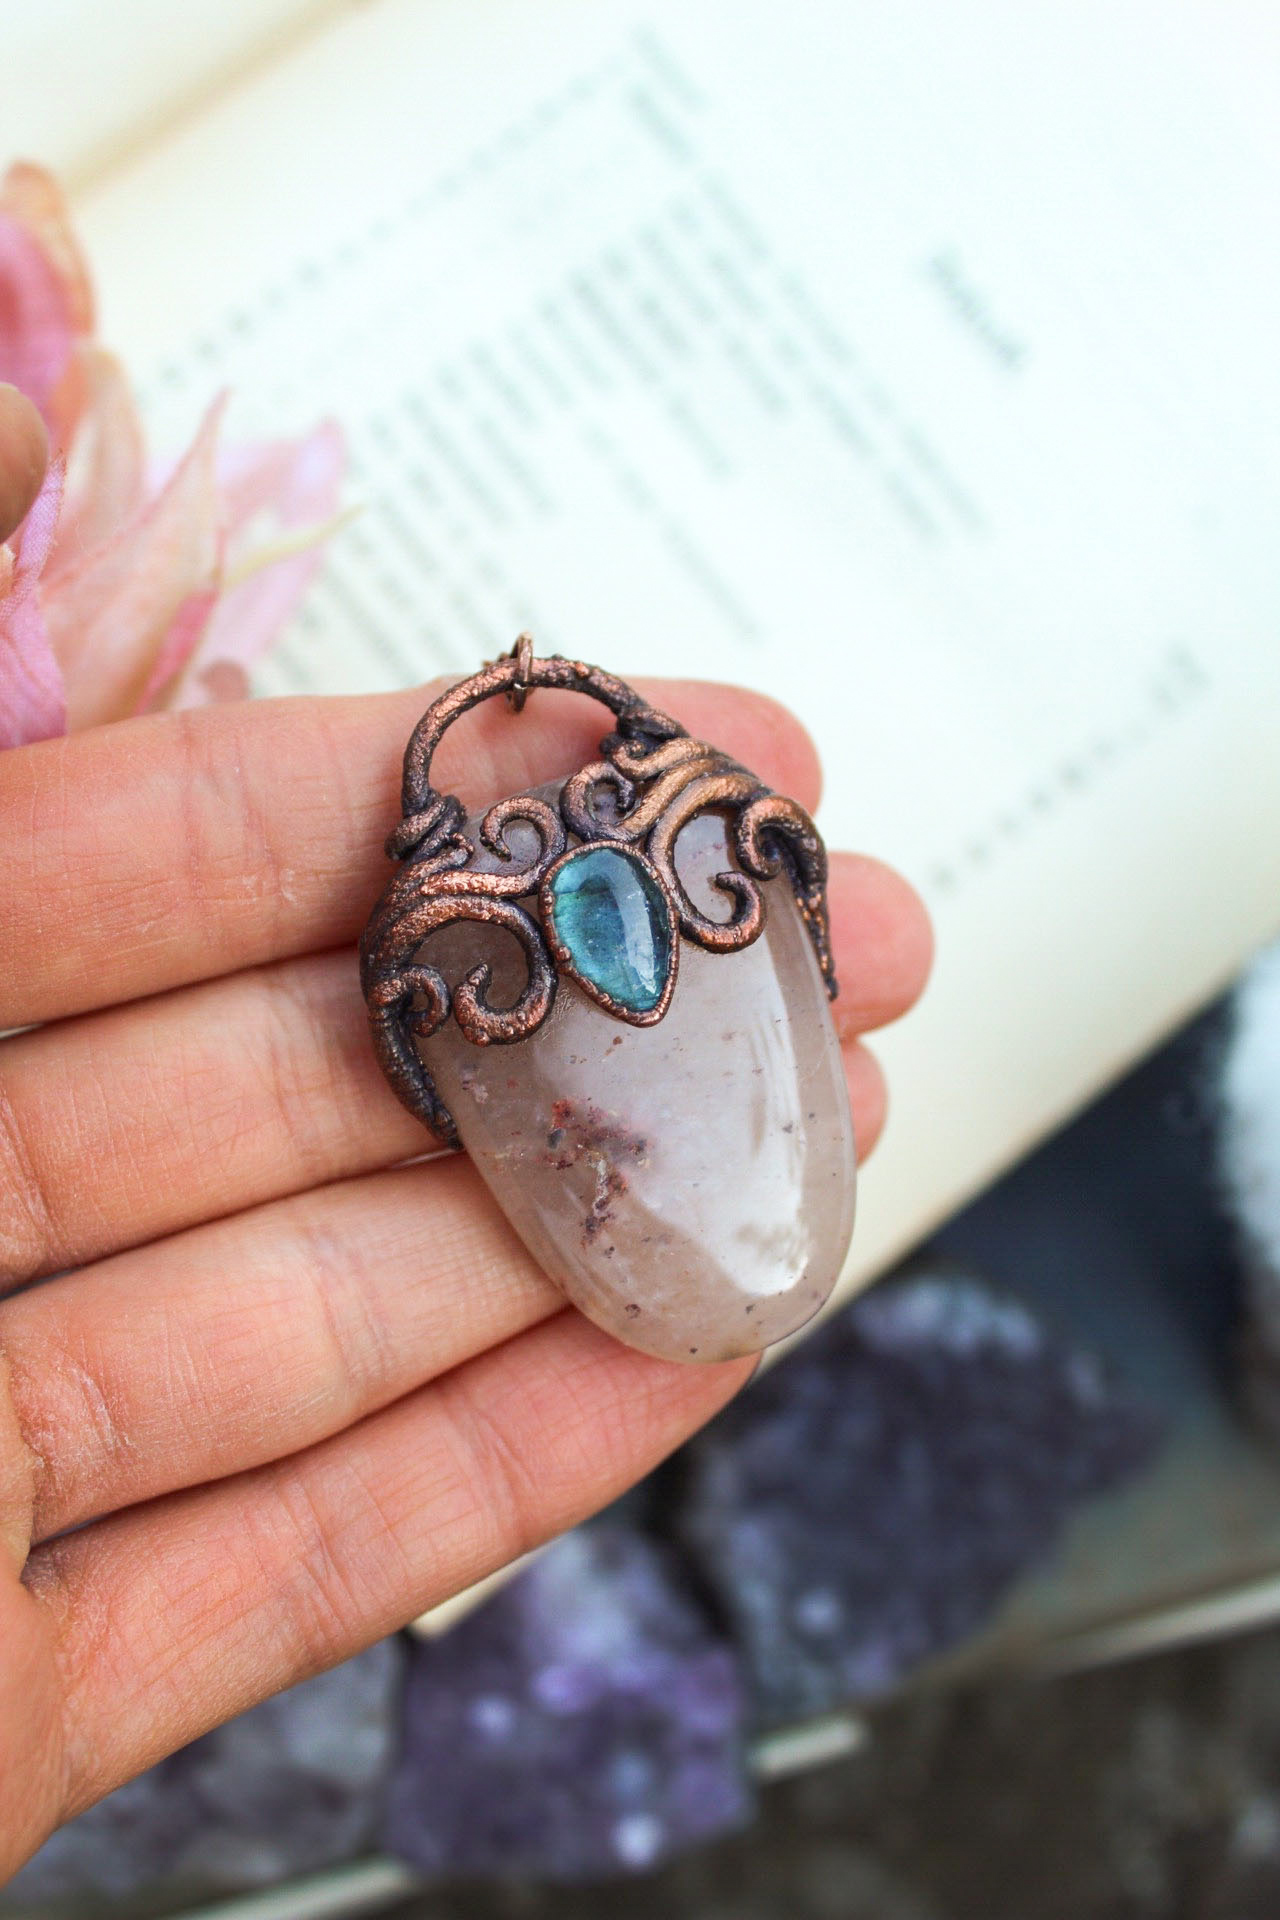 Lovely Mermaid Portal Necklace with Crystals Featuring Quartz, Aged Copper + a Blue Labradorite Tear